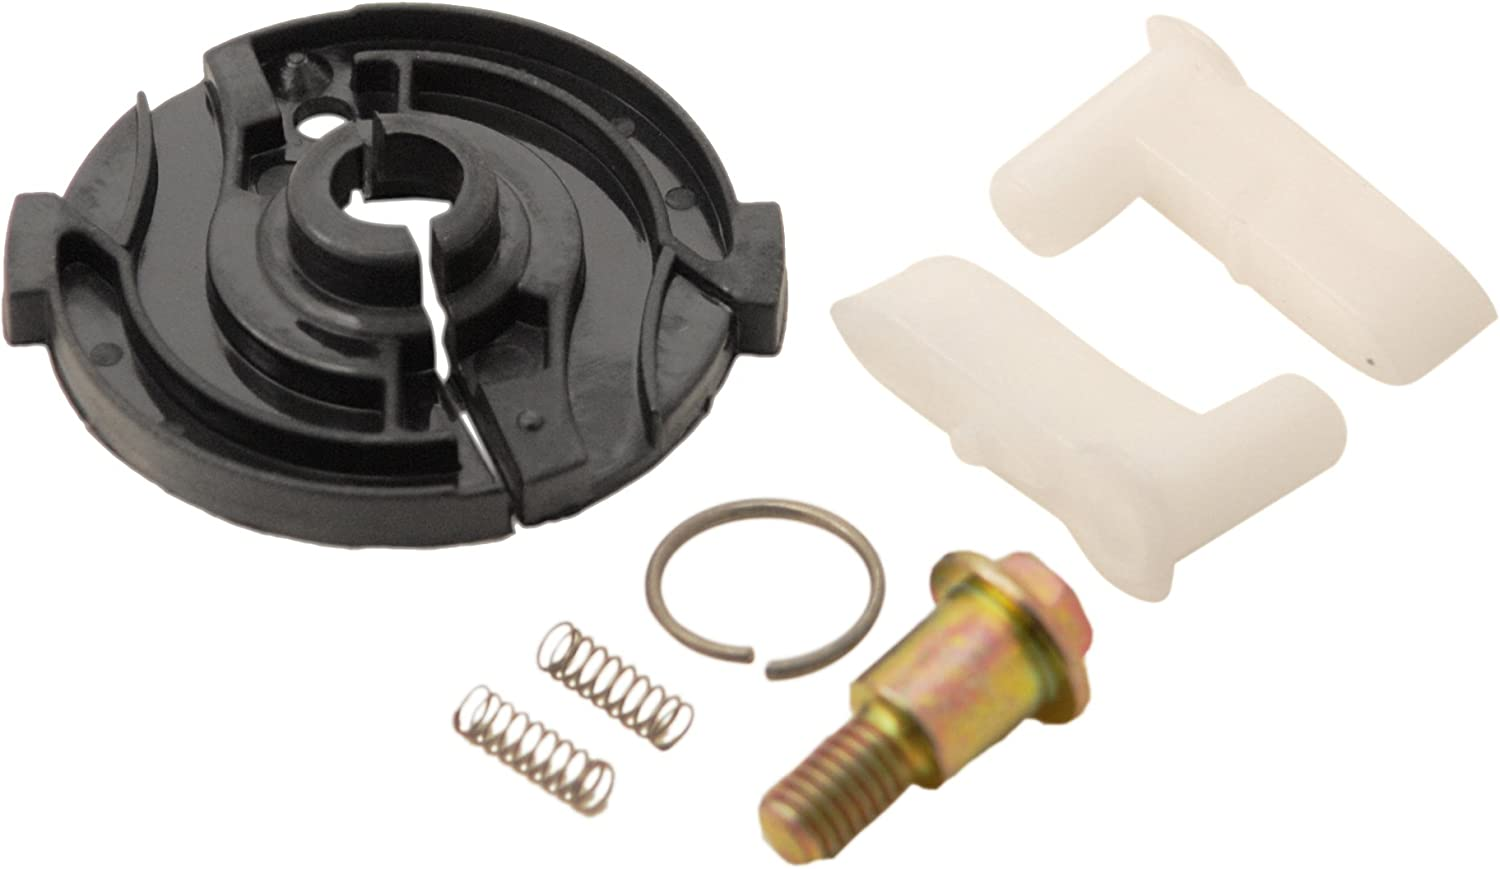 STARTER PAWL KIT FITS BRIGGS STRATTON REPLACES OEM 692299 281503 281505 492333